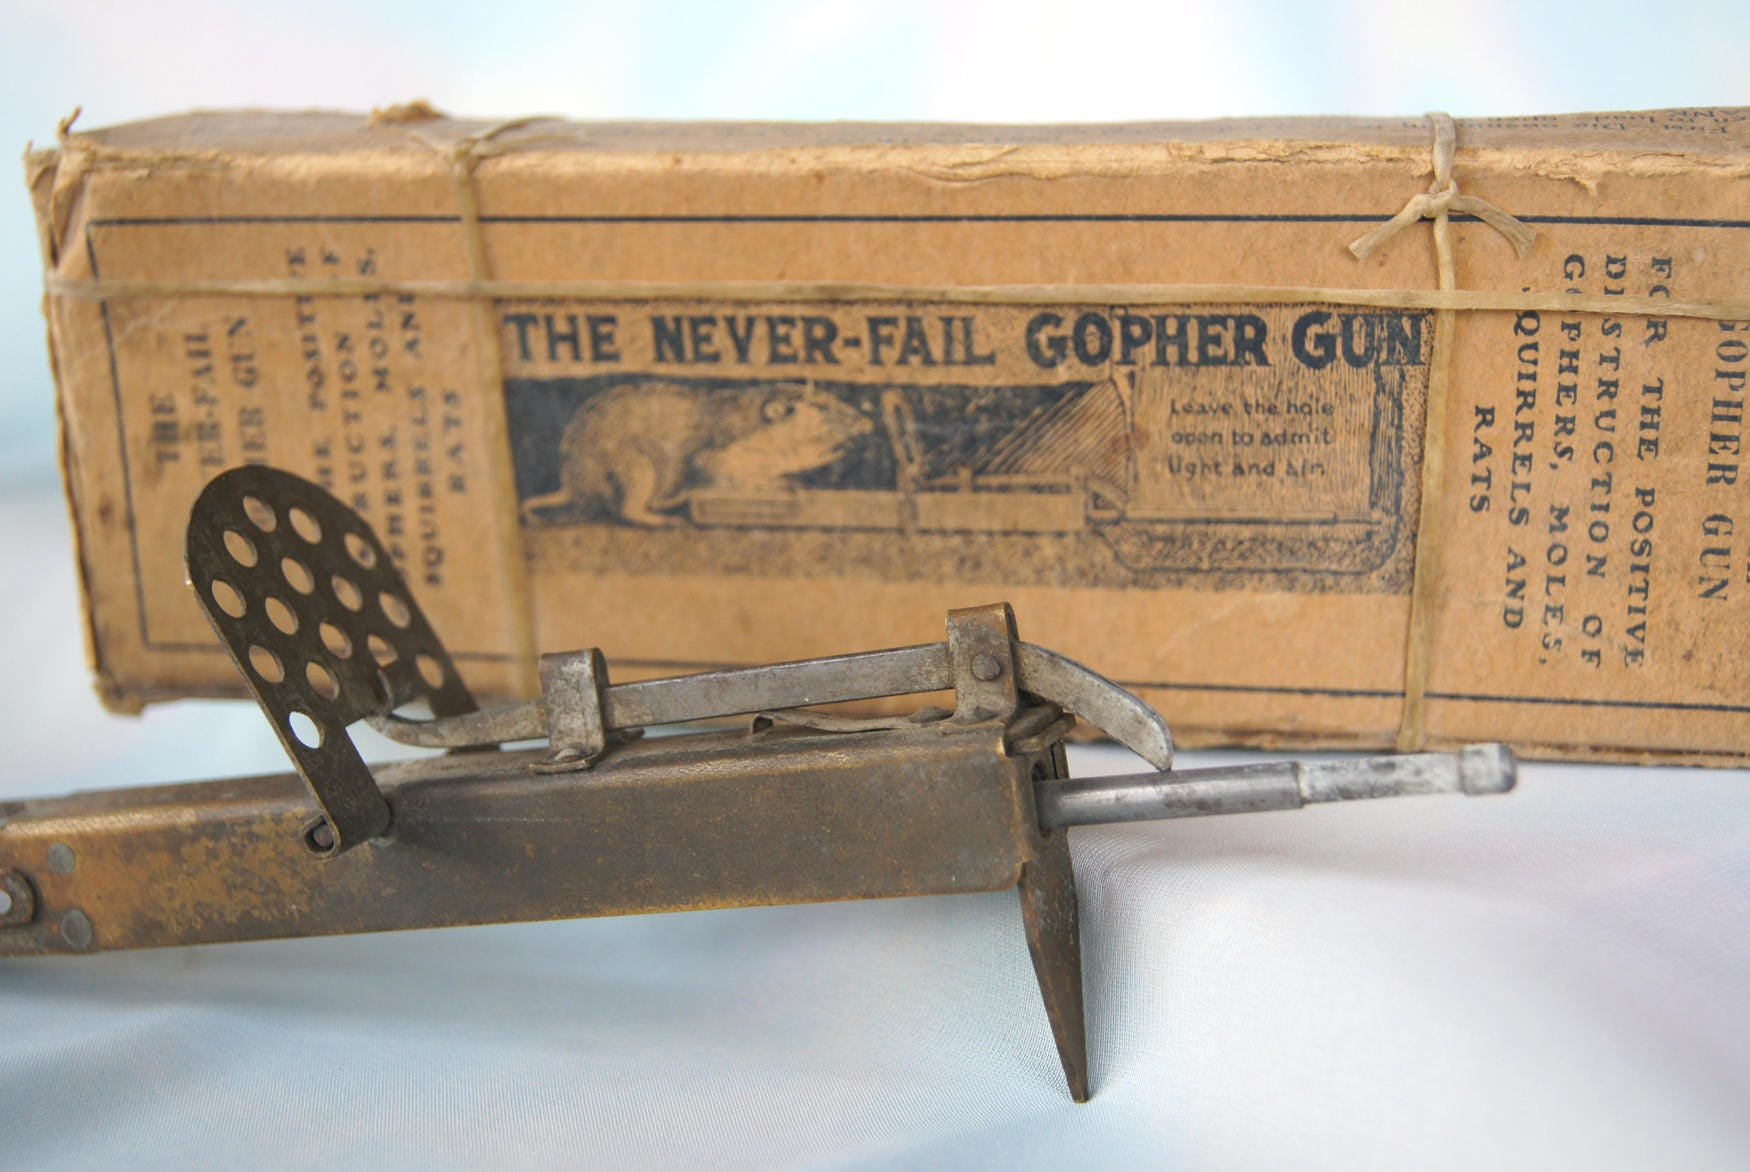 "Fan Coil Cosa Sono the never fail gopher gun - j. r. roper co., san leandro, calif. - pat.  oct. 17, '22. - early 1900's rodent trap ""gun"""